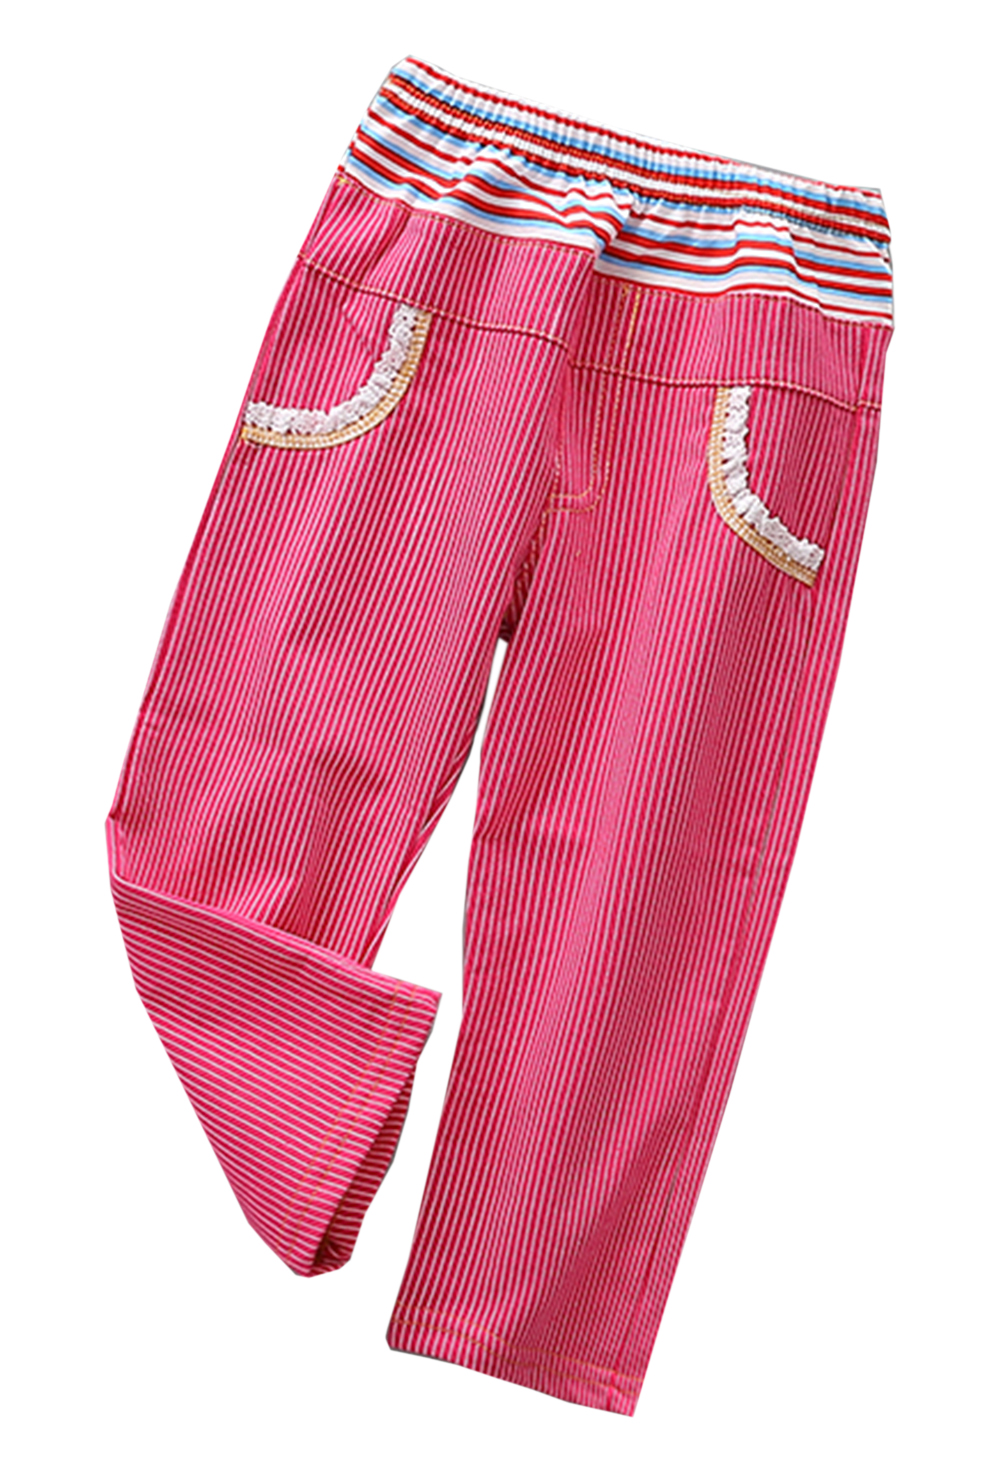 StylesILove Little Girl Long Stripe Elastic Waist Casual Pants - 4 Colors (120/5-6 Years, Yellow+Black)